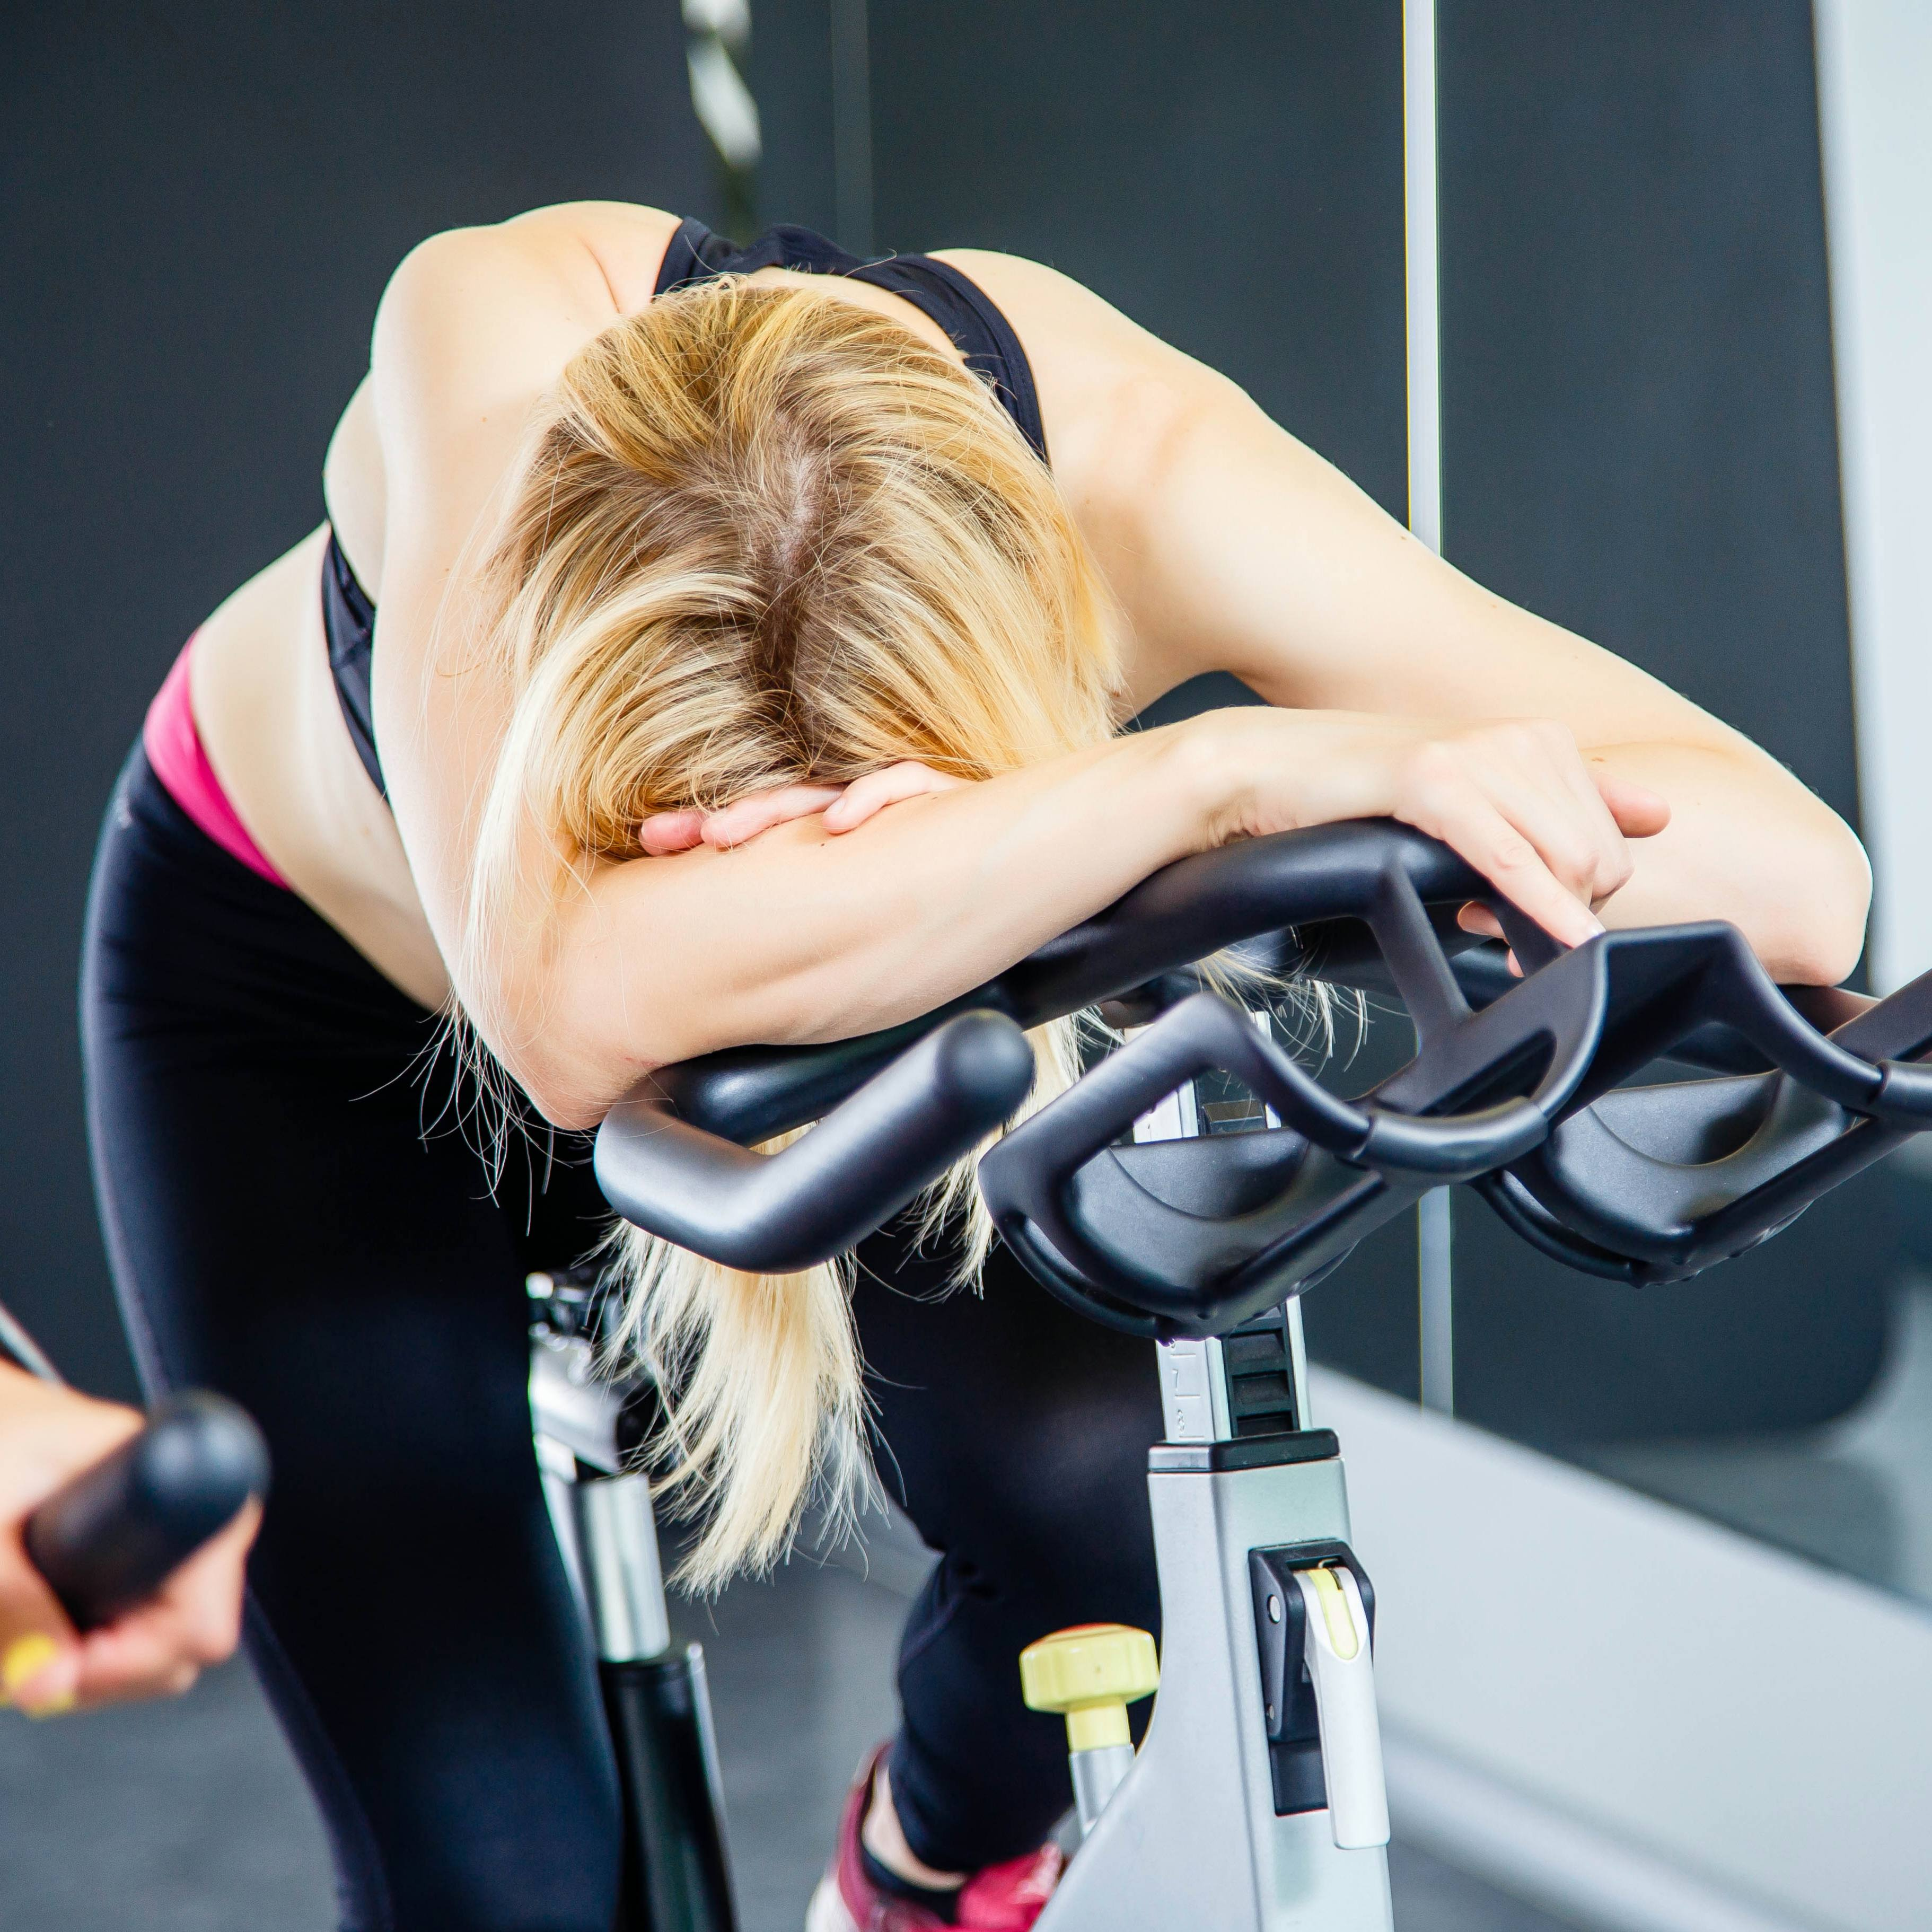 an exhausted woman exercising on a bike in a gym